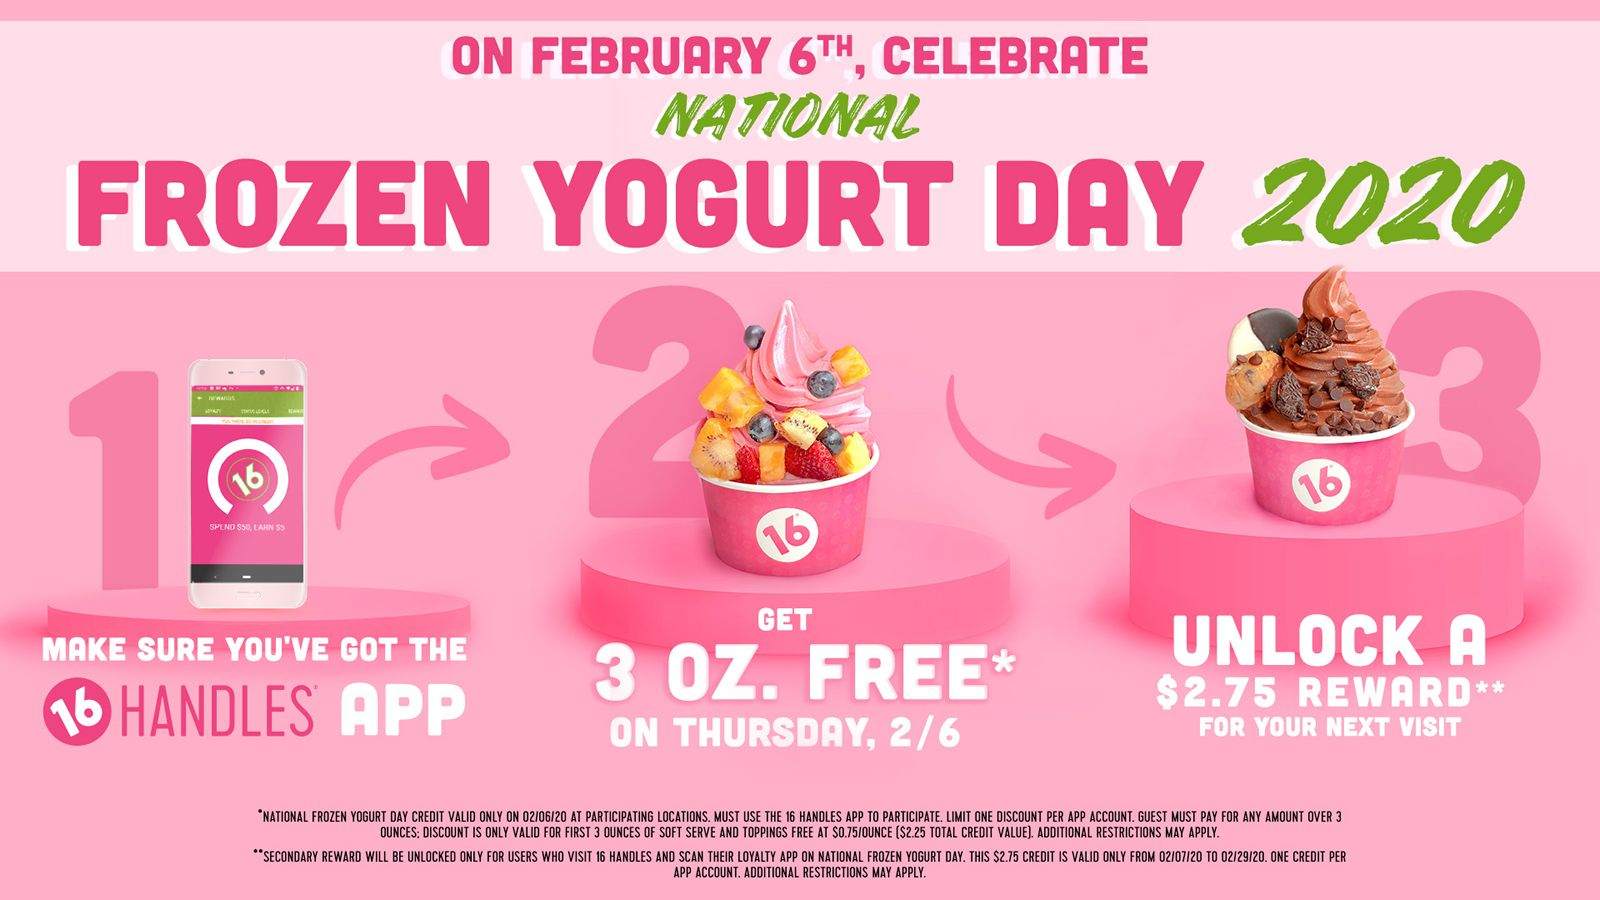 16 Handles Celebrates National Frozen Yogurt Day with Free Fro-Yo!